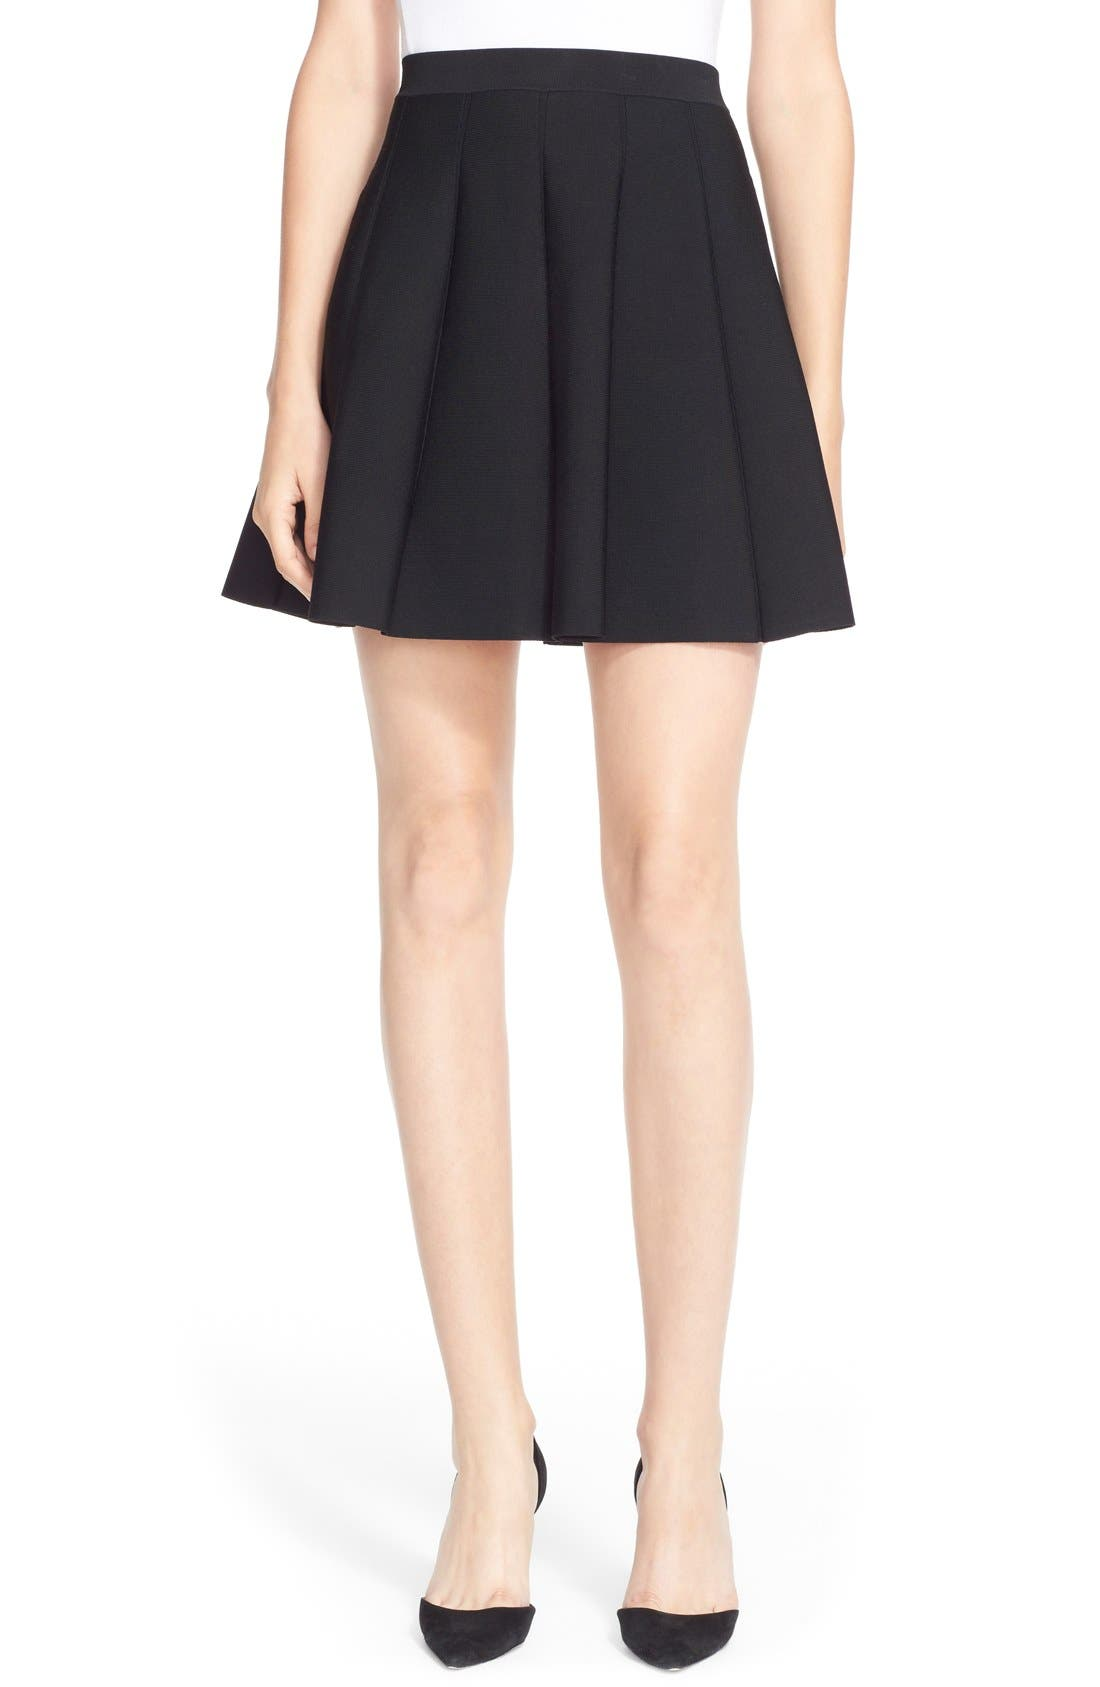 Alternate Image 1 Selected - Parker 'Zoey' Pleat A-Line Skirt